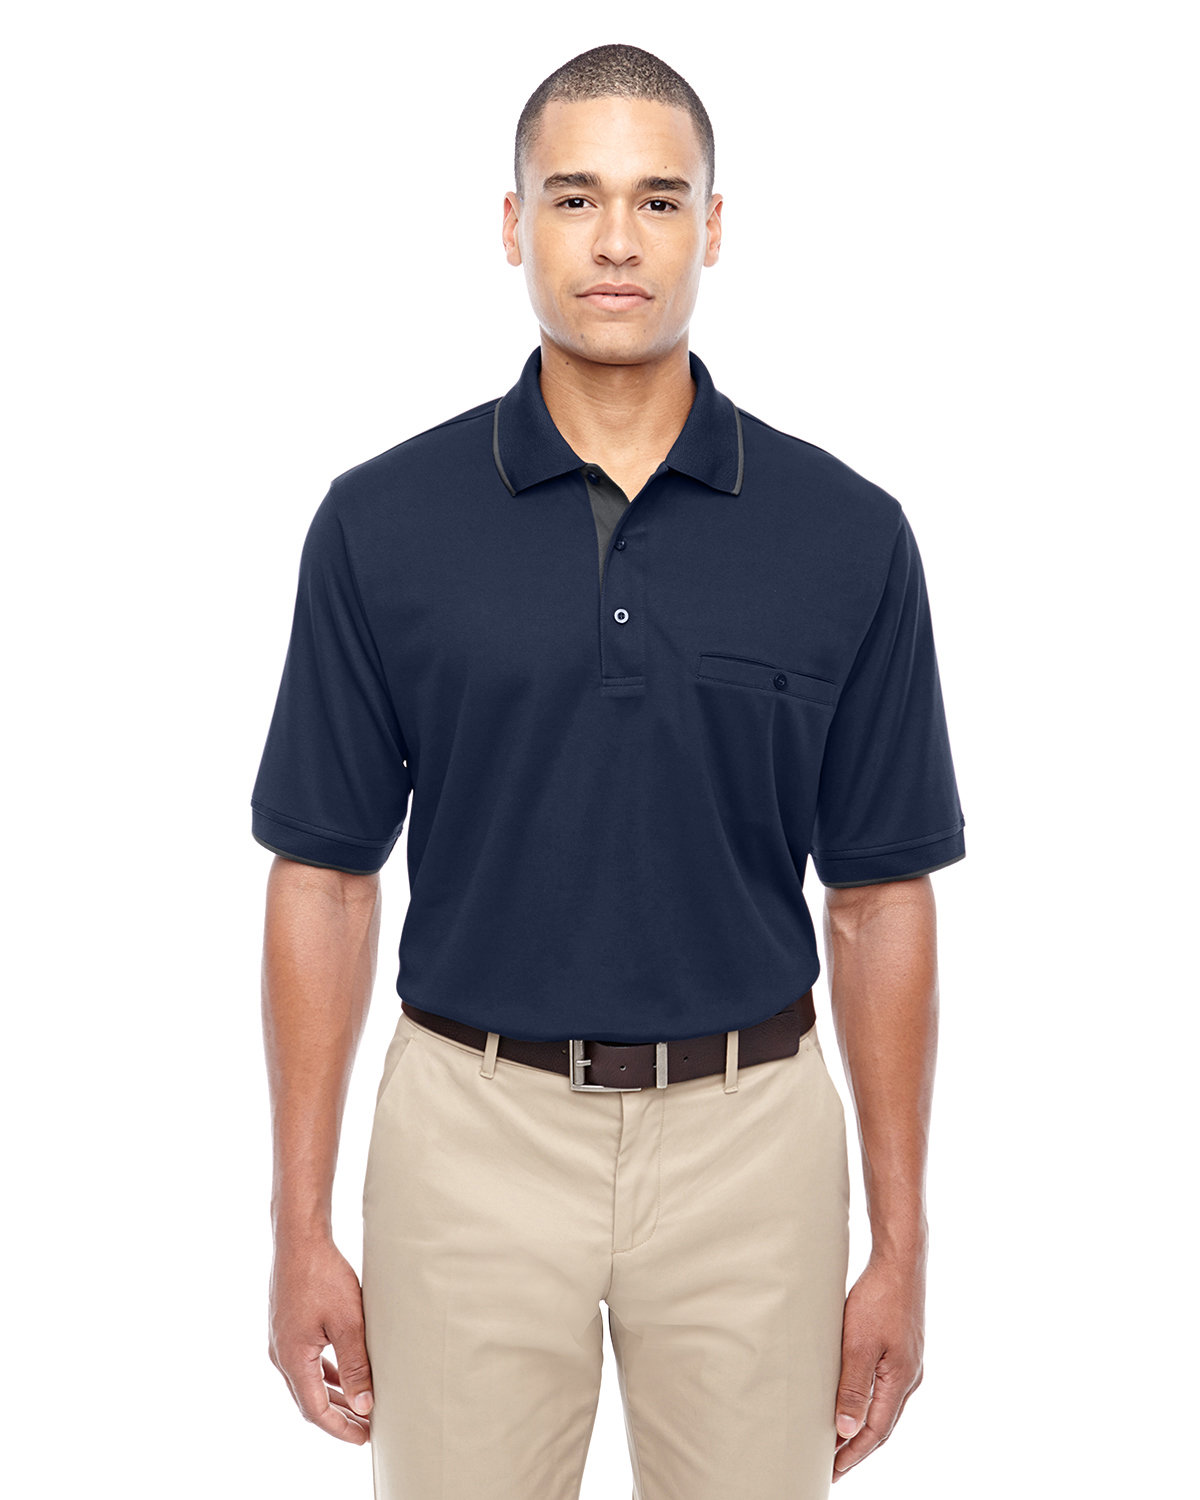 Core 365 Men's Motive Performance Piqué Polo with Tipped Collar CLASSC NVY/ CRBN